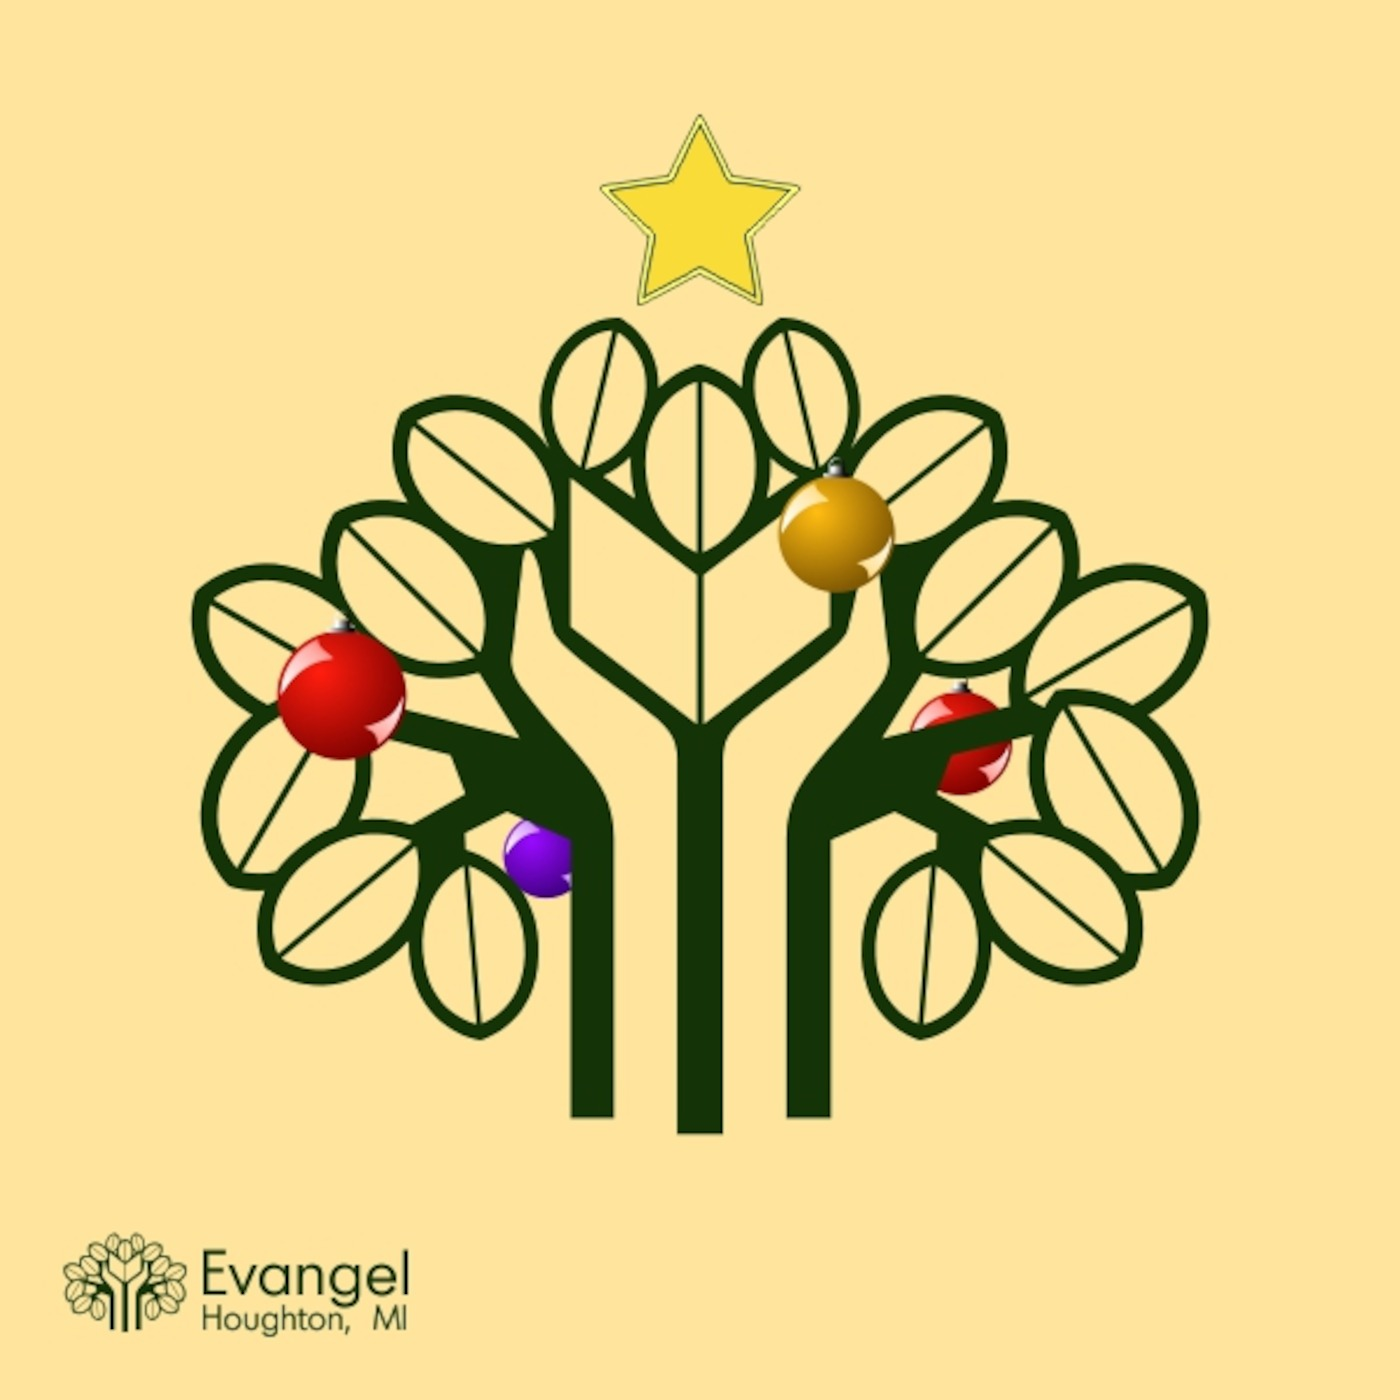 Christmas Eve Homily: Two Unlikely Birthplaces Evangel